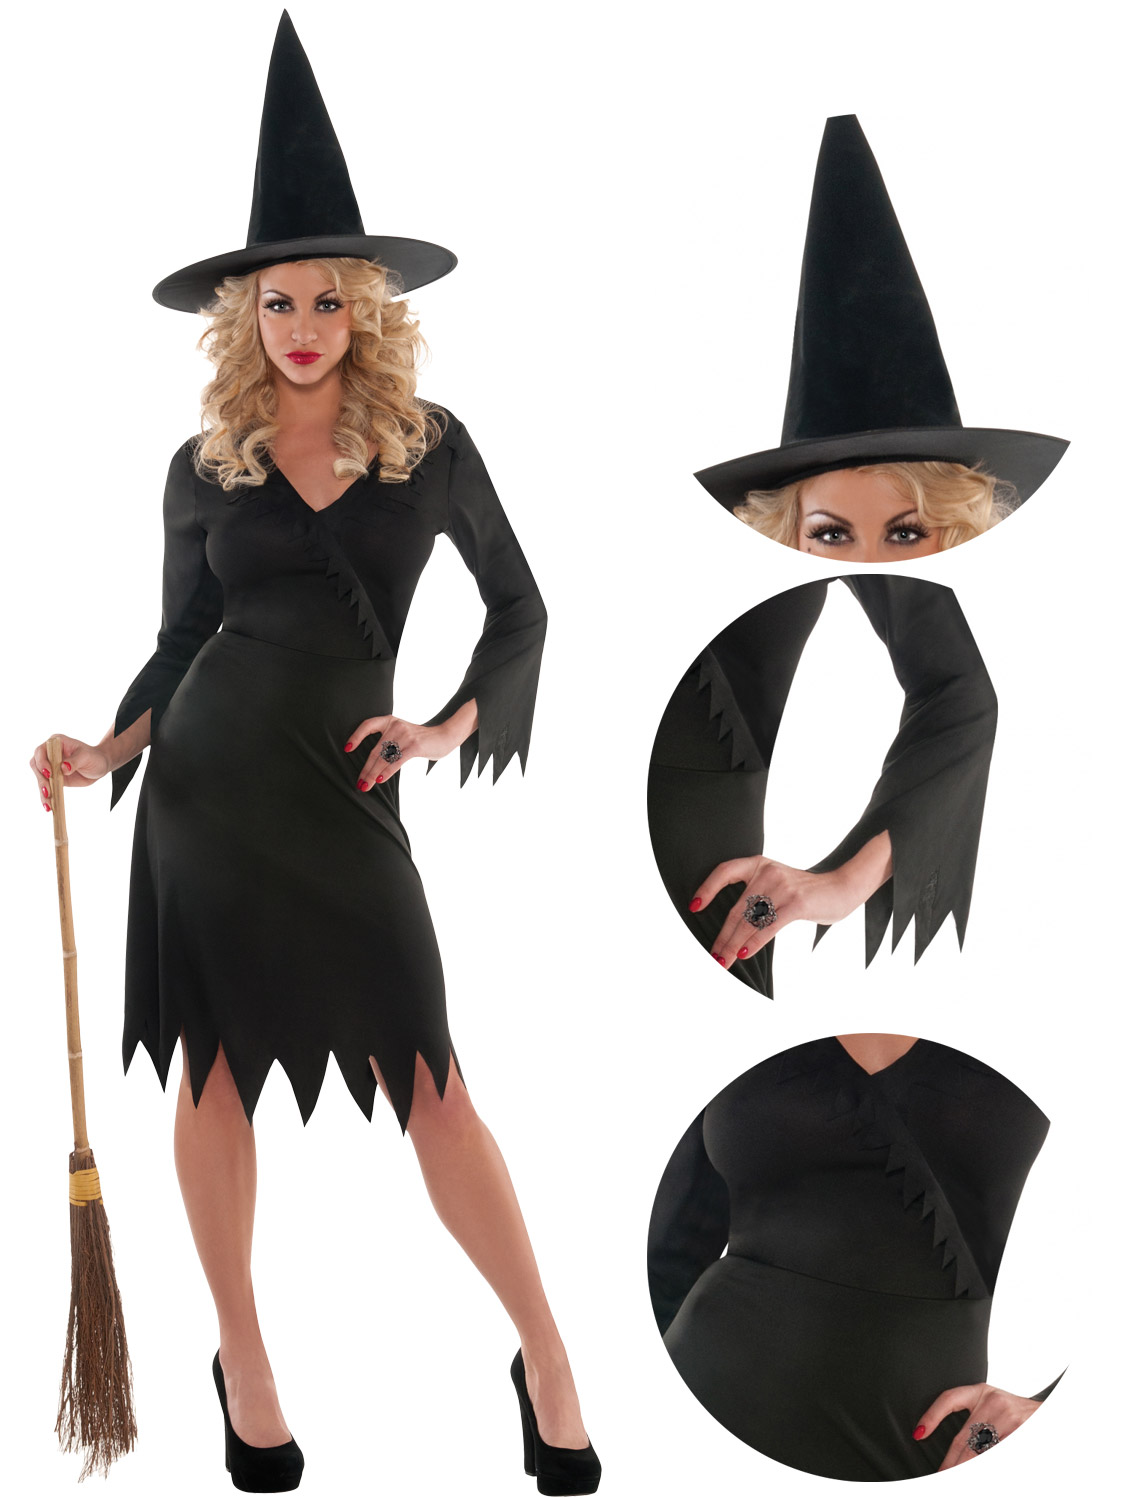 Halloween Costumes and Halloween Costume Ideas for Kids and Adults. Everyday low prices, pick up discount on eligible items and free shipping on all orders over $ Halloween supplies, decor, materials and accessories to create the perfect Halloween costume and Halloween costume or themed party!